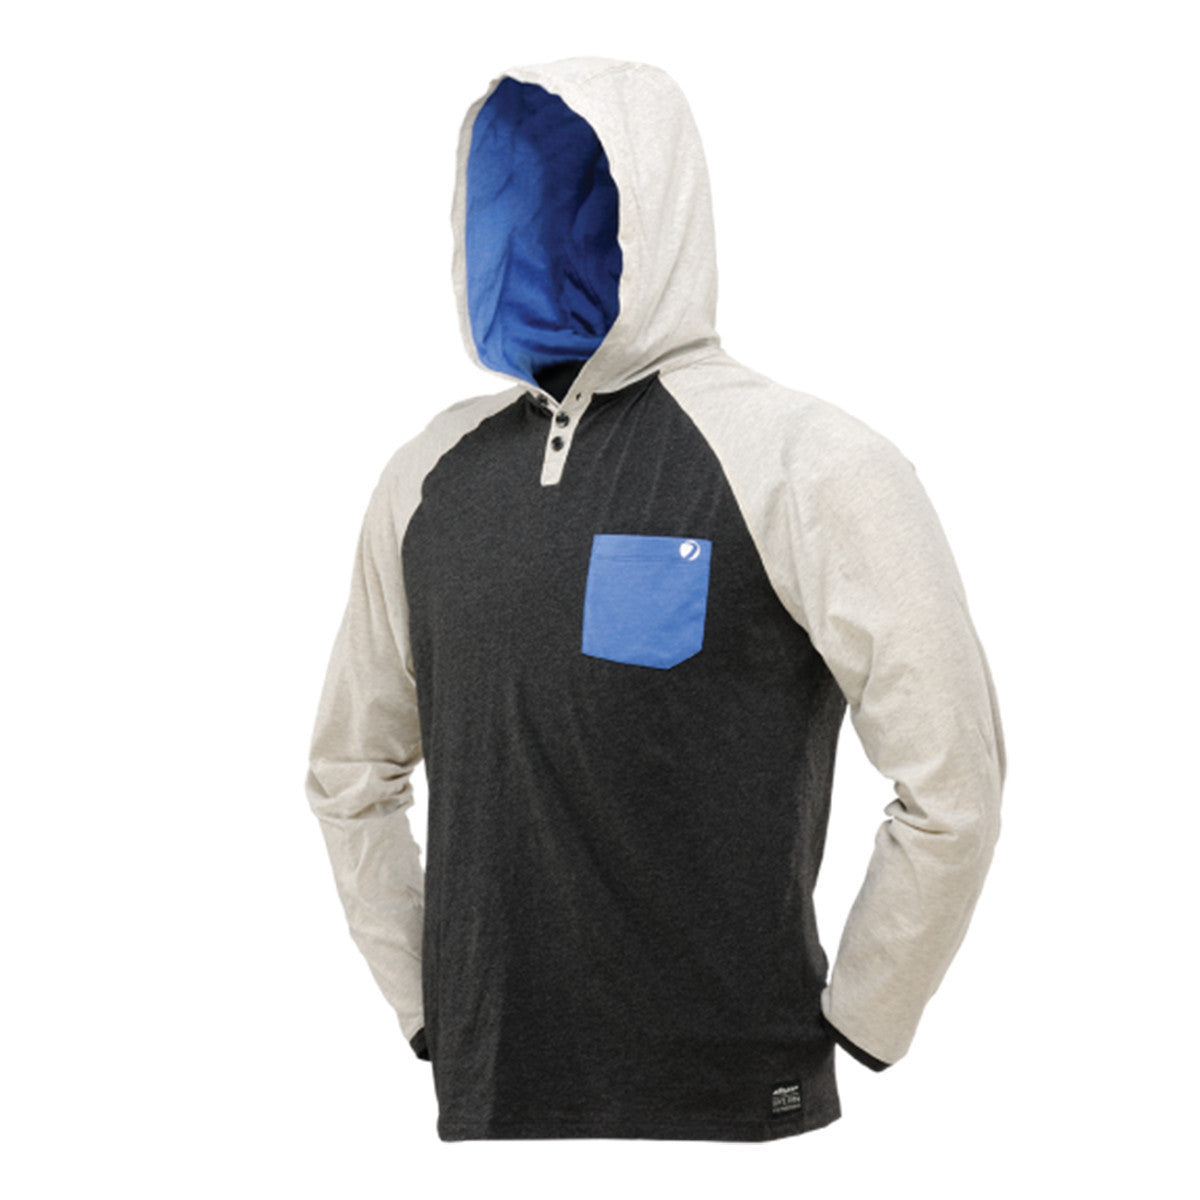 Dye Coba Hood Shirt   Heather Gray   Blue